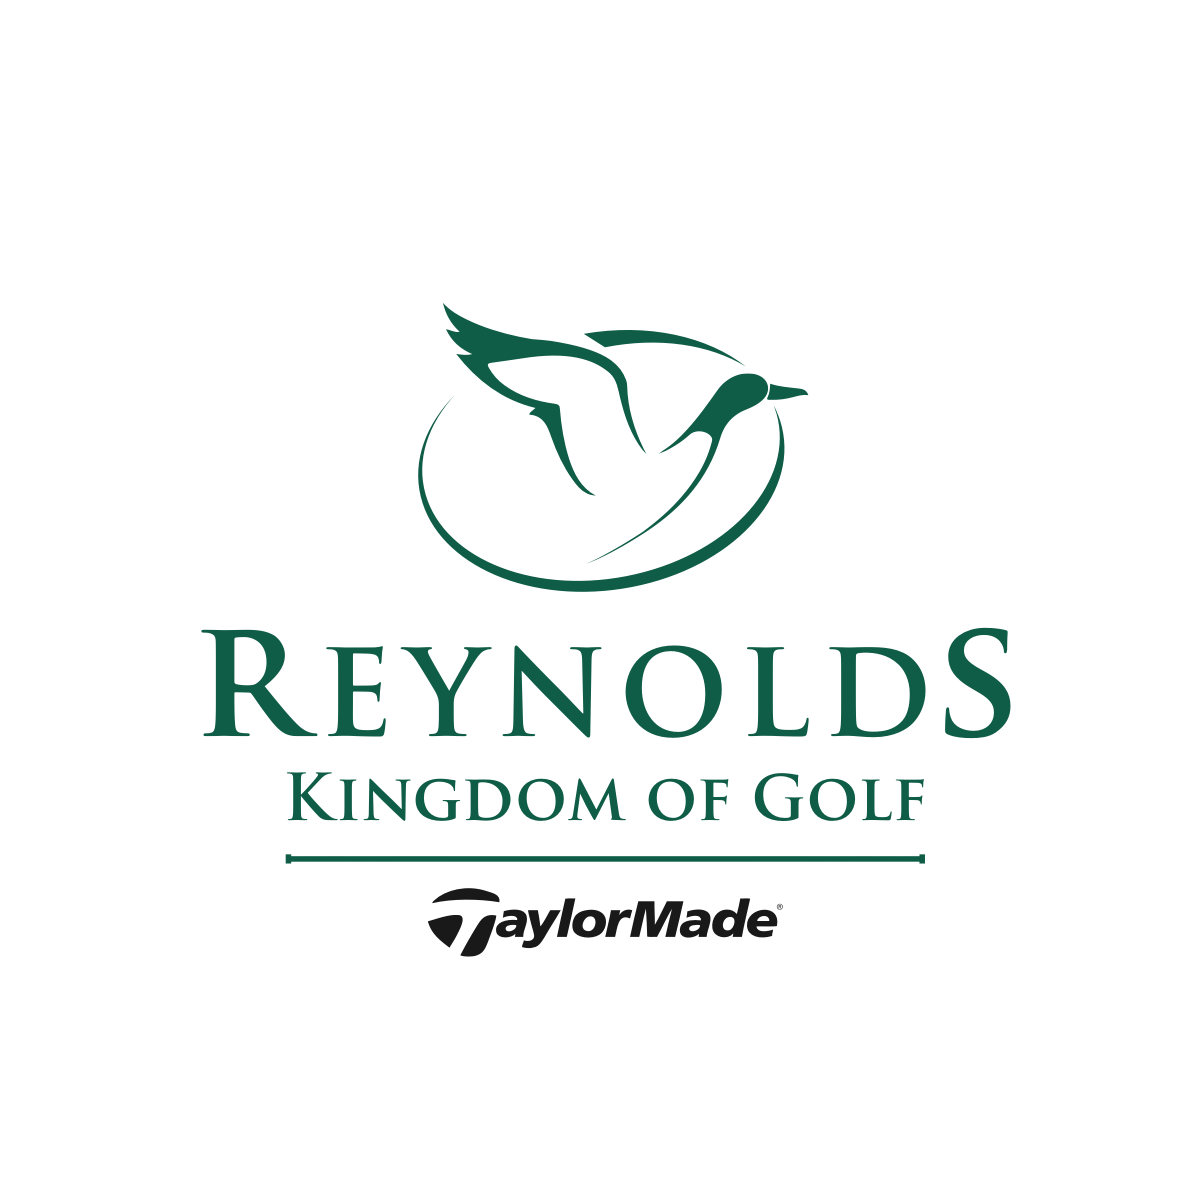 Reynolds Kingdom of Golf